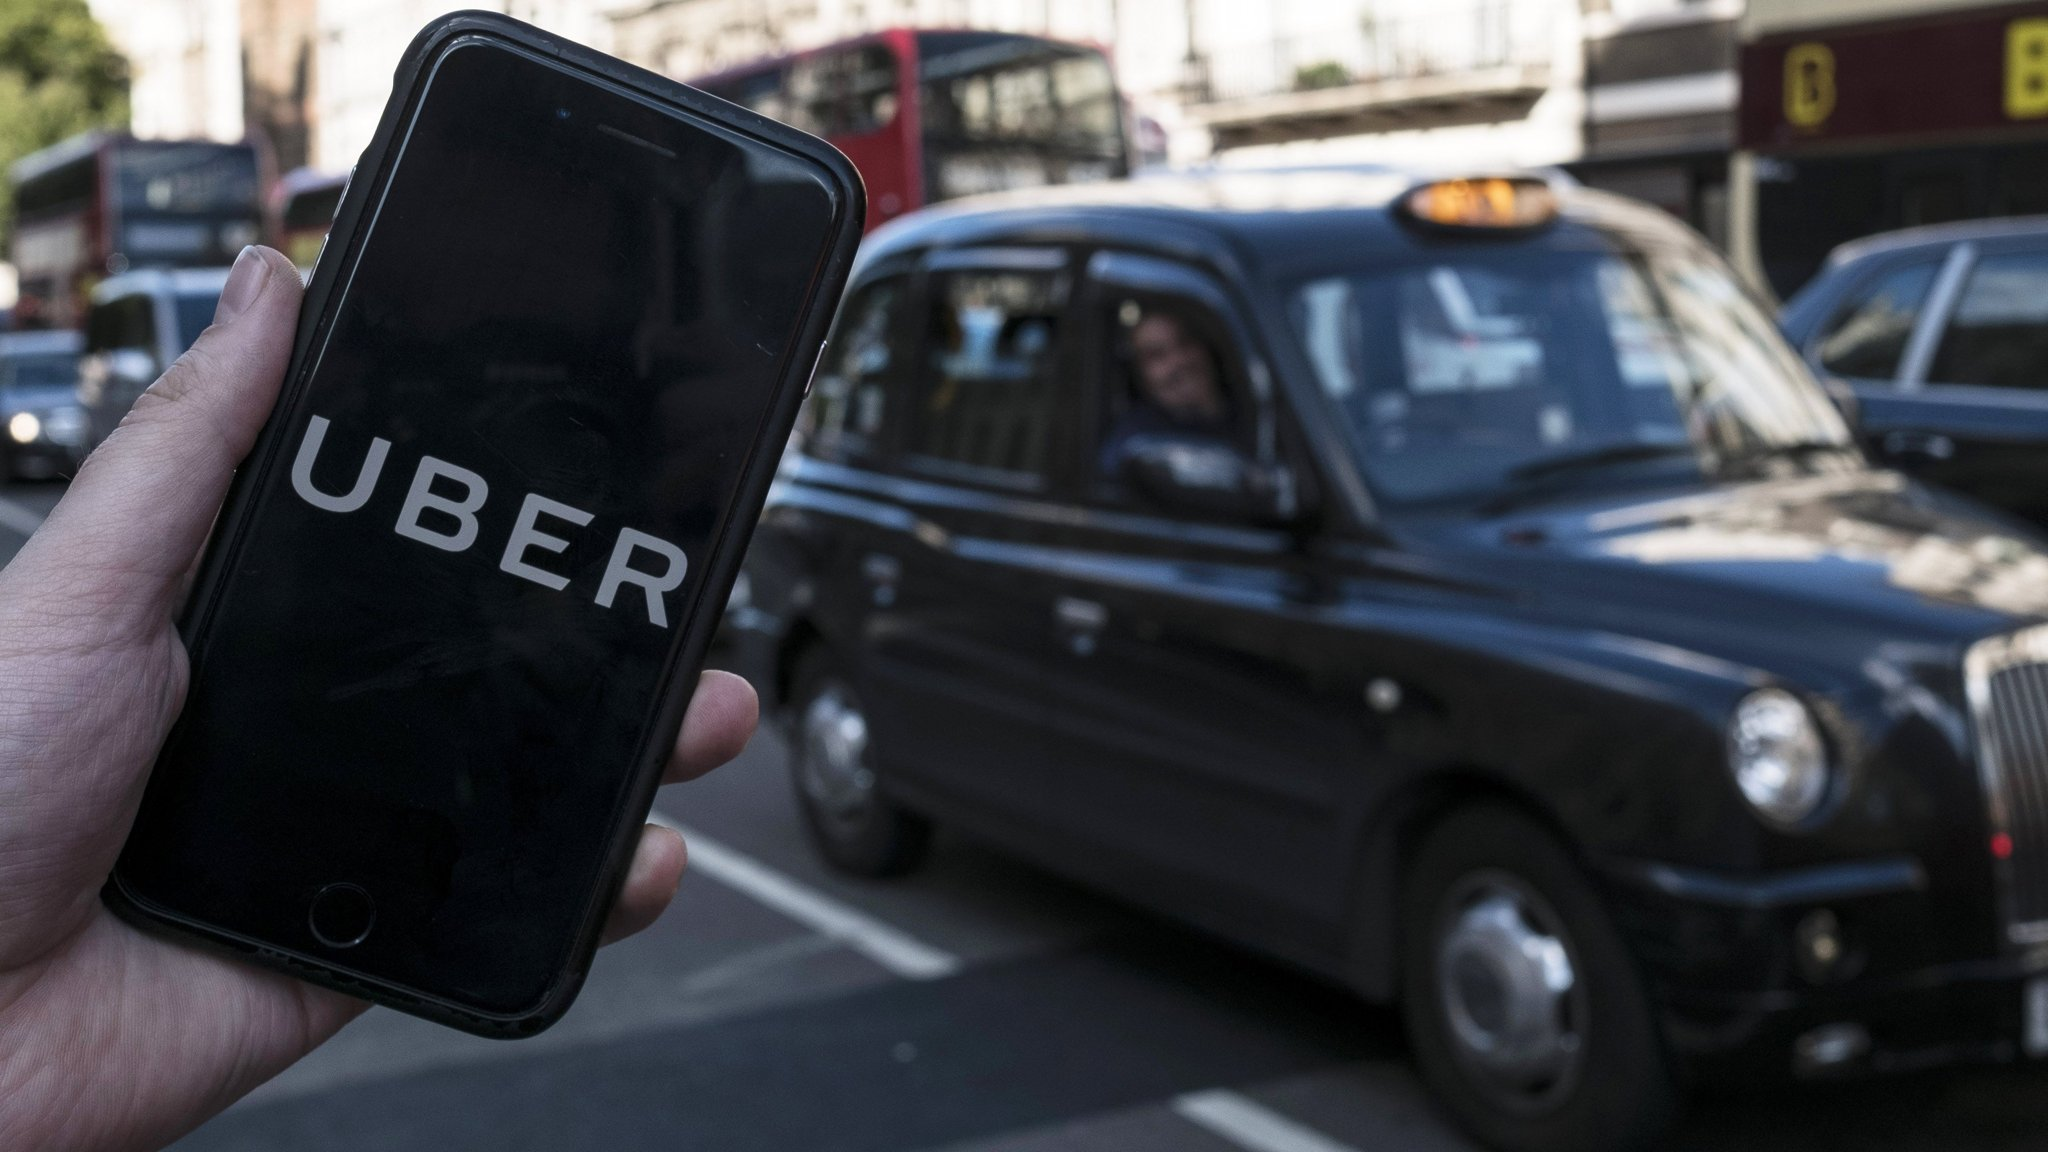 ECJ judgment brings Uber into line with taxi rules